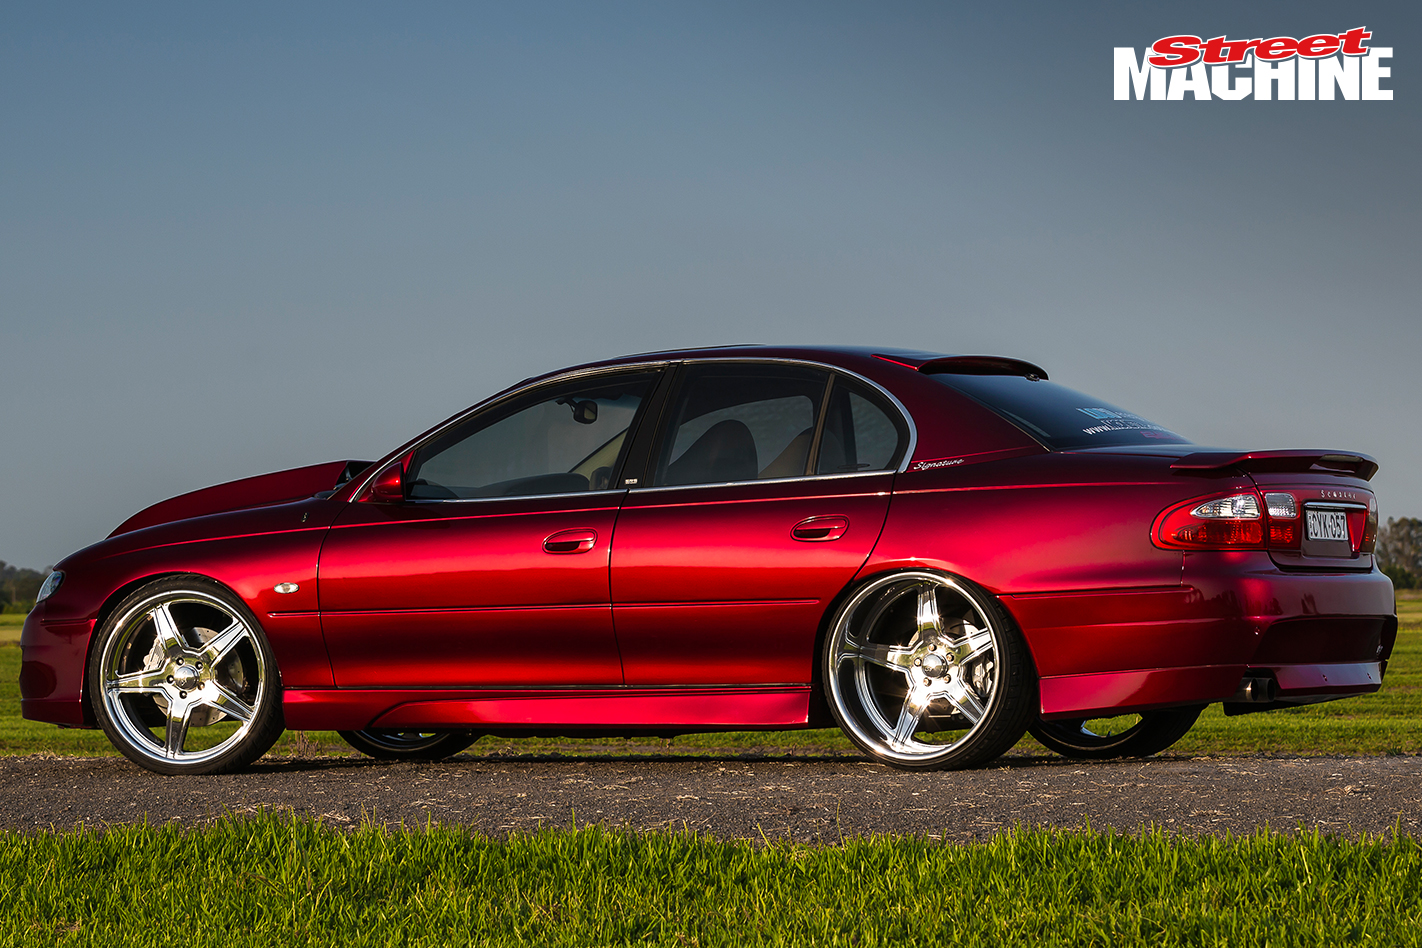 Tubbed, four-linked and blown VX HSV Senator